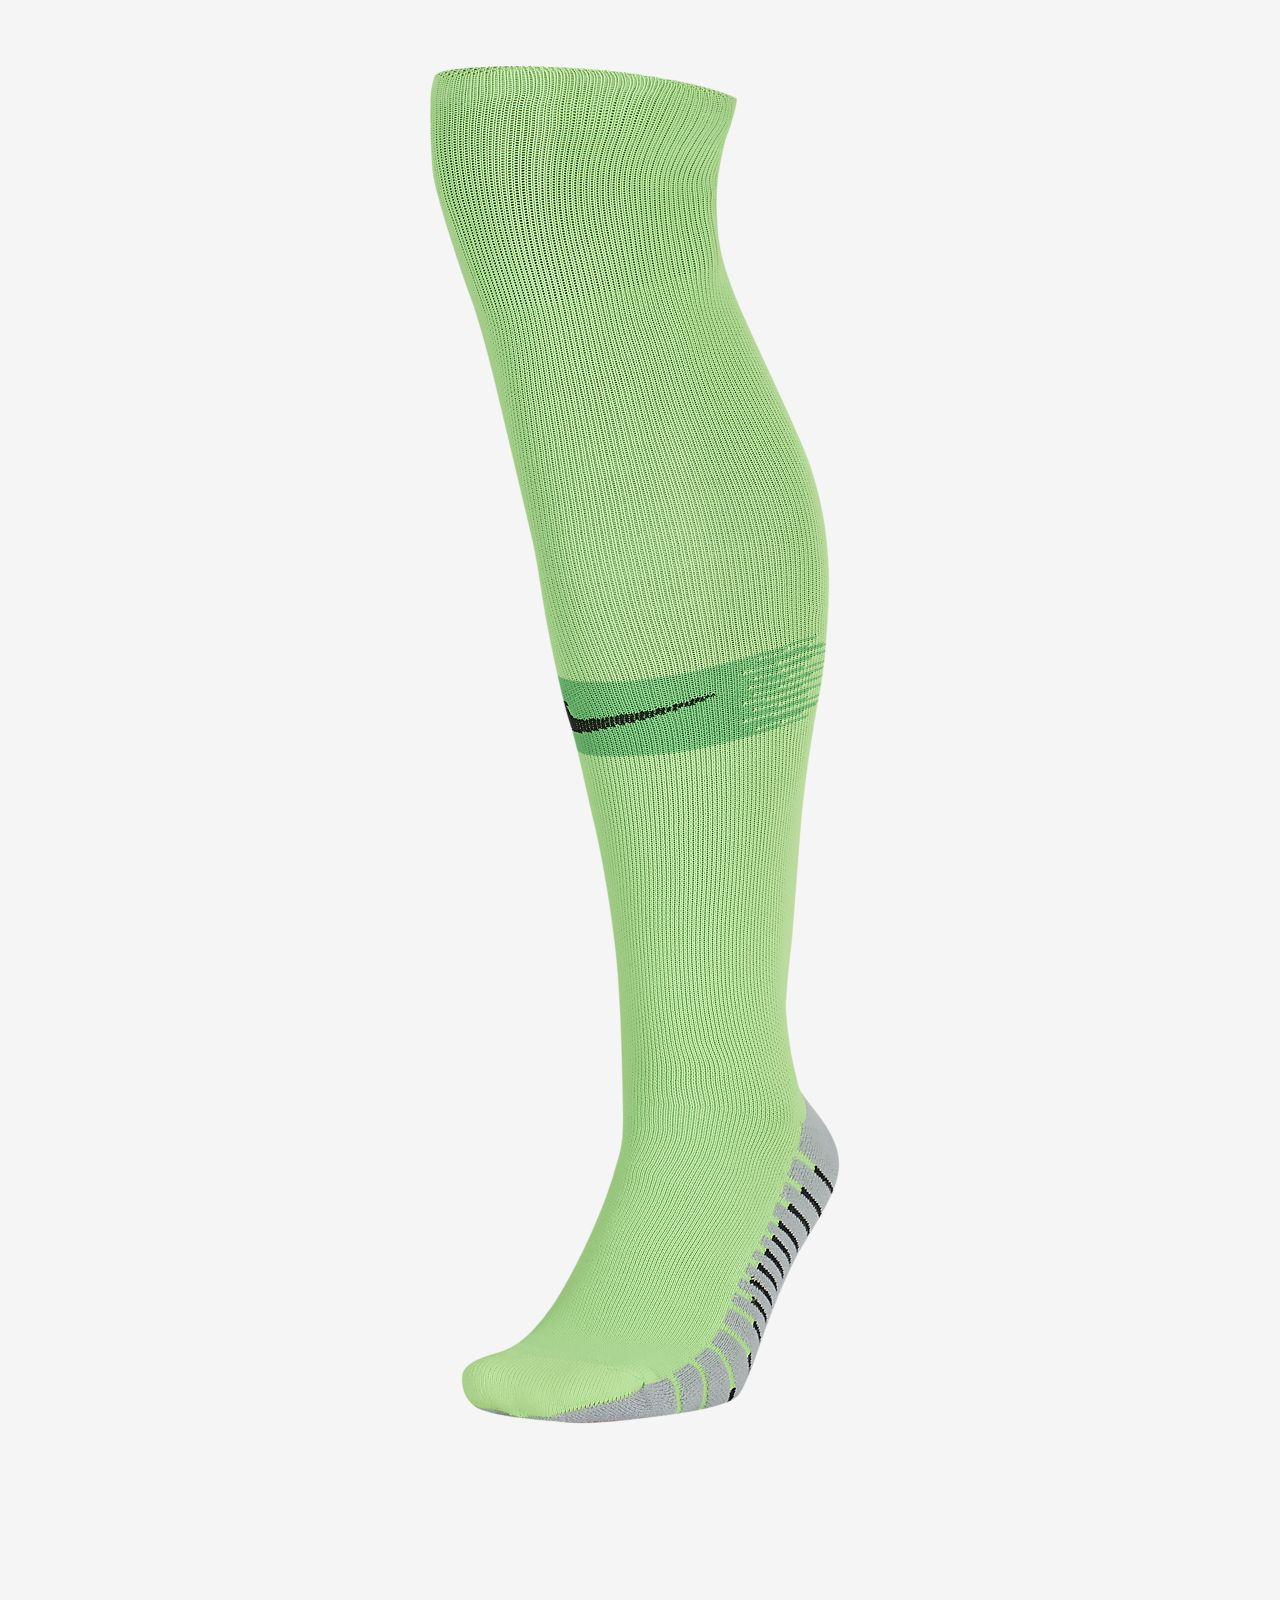 Nike Team MatchFit Over-the-Calf Football Socks